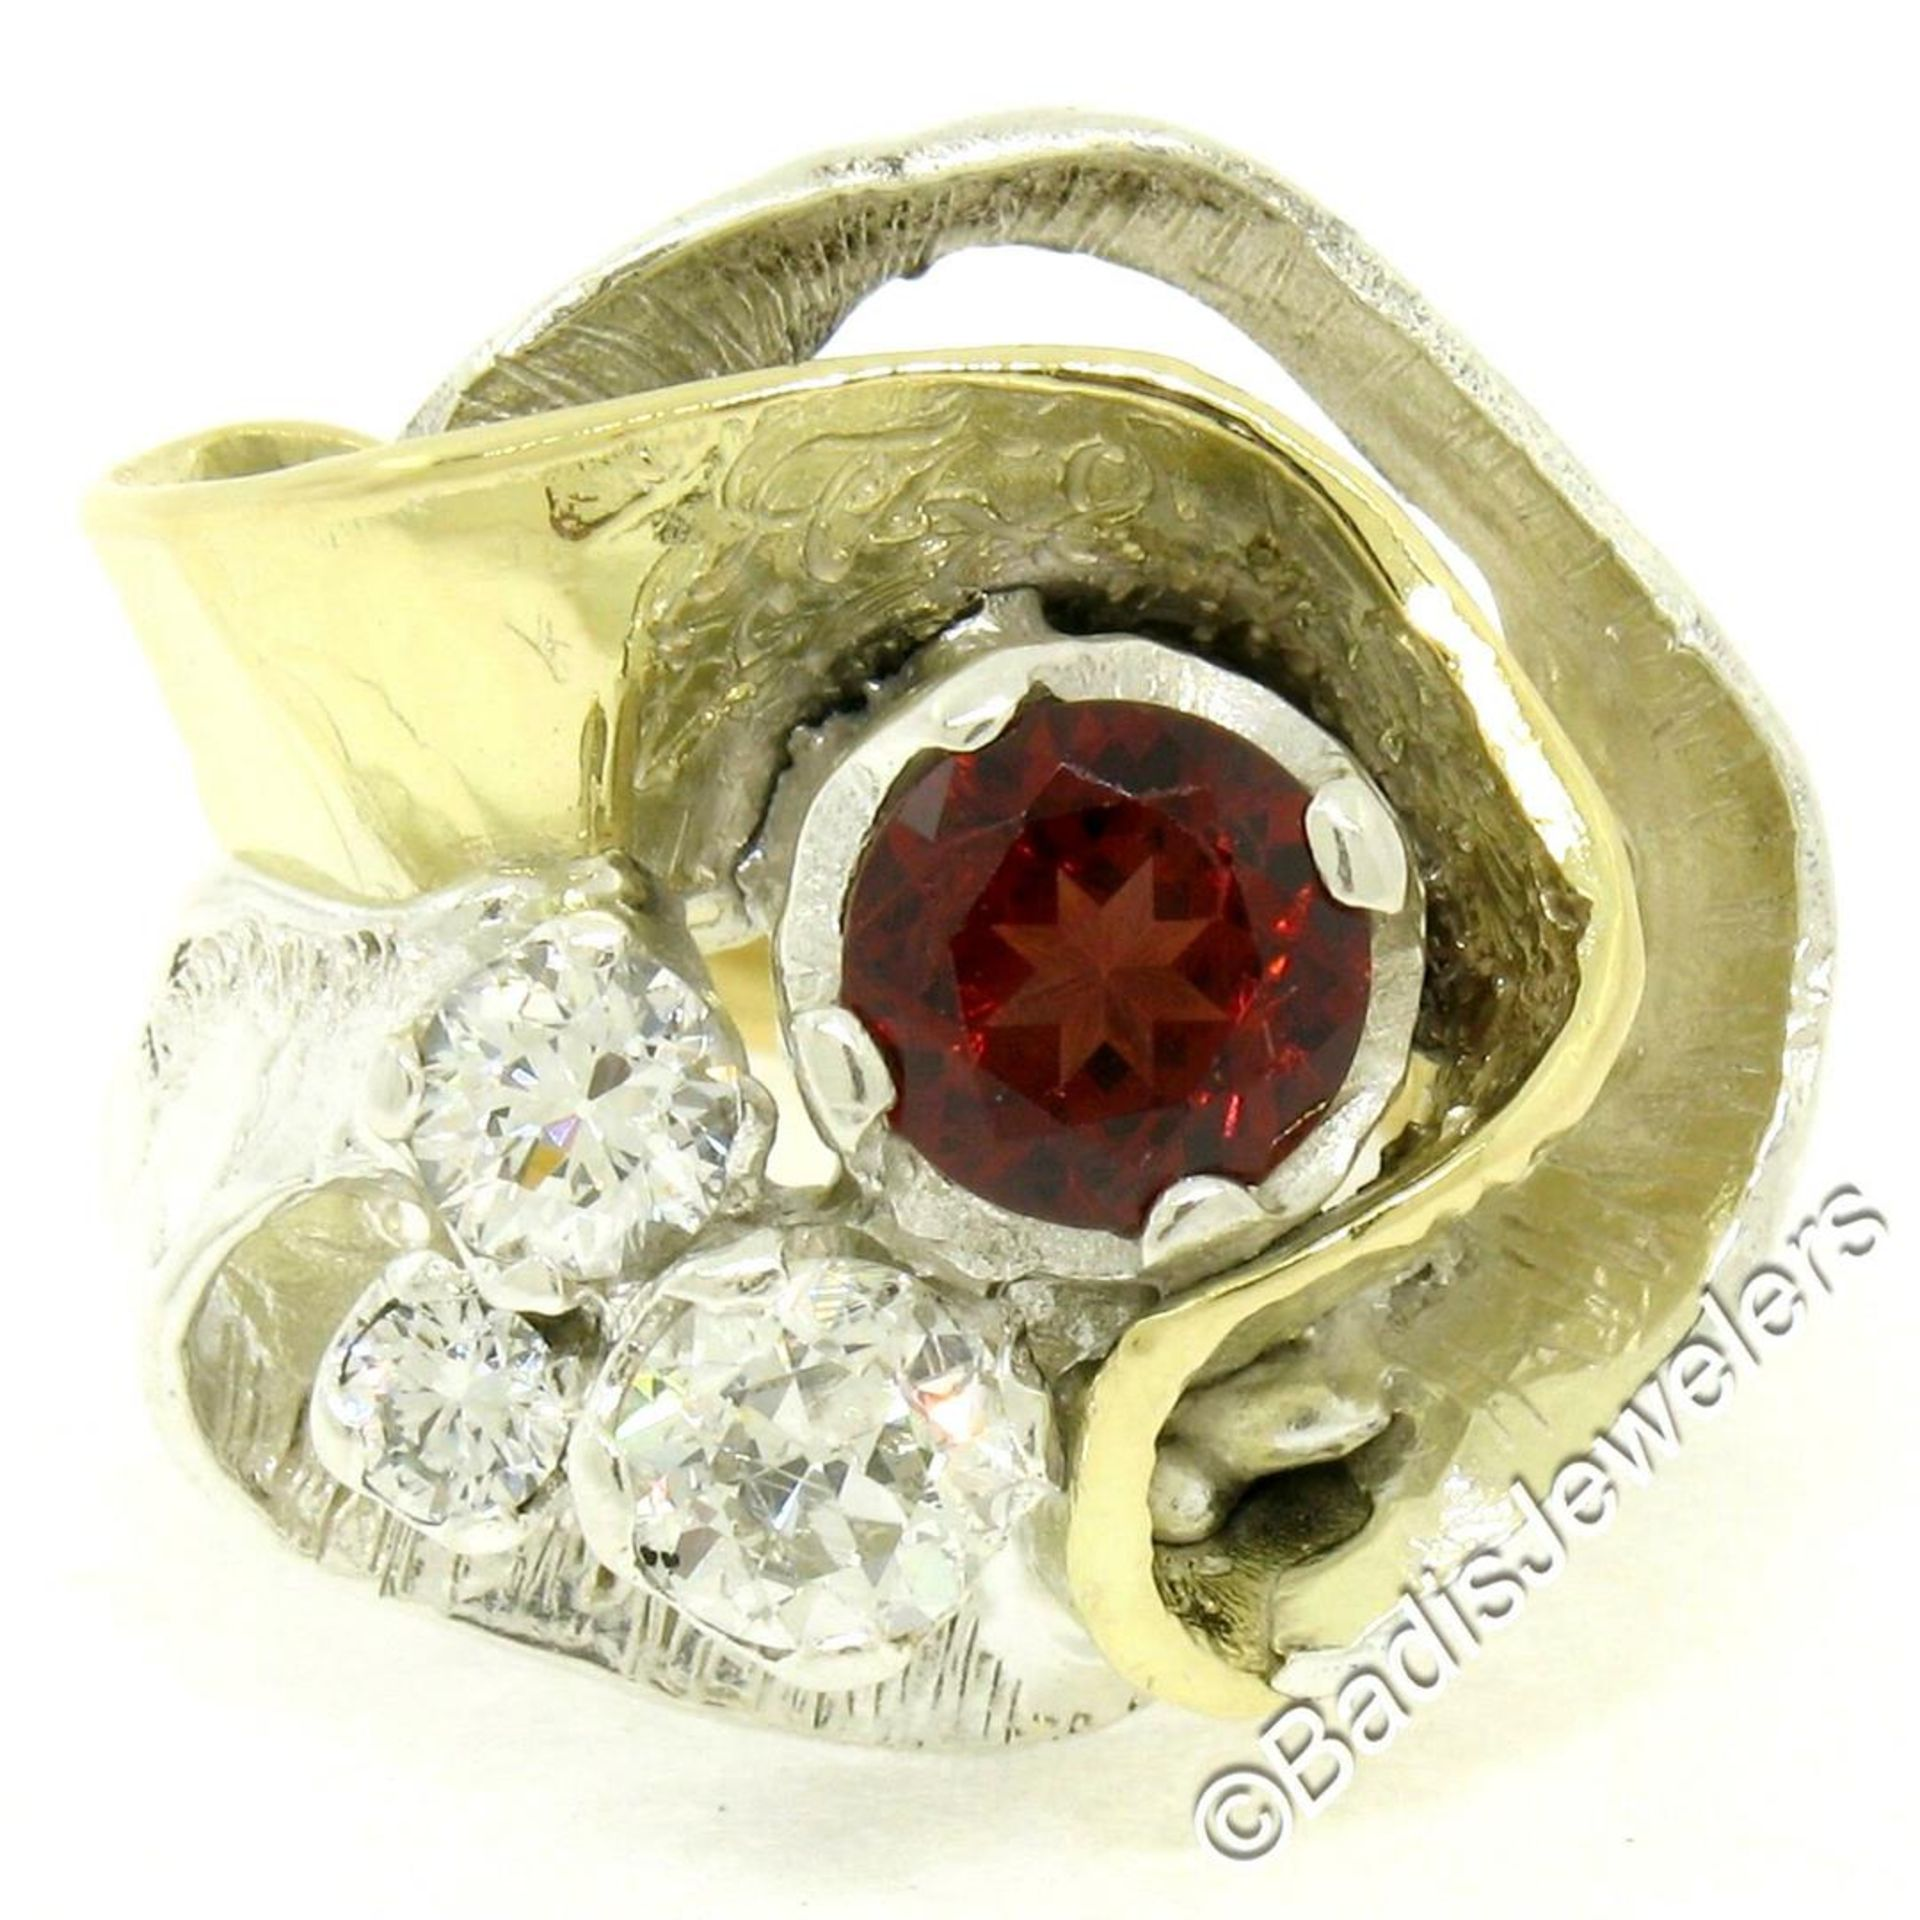 18kt Yellow Gold and Sterling Silver 2.73ctw Garnet and Diamond Cocktail Ring - Image 3 of 9